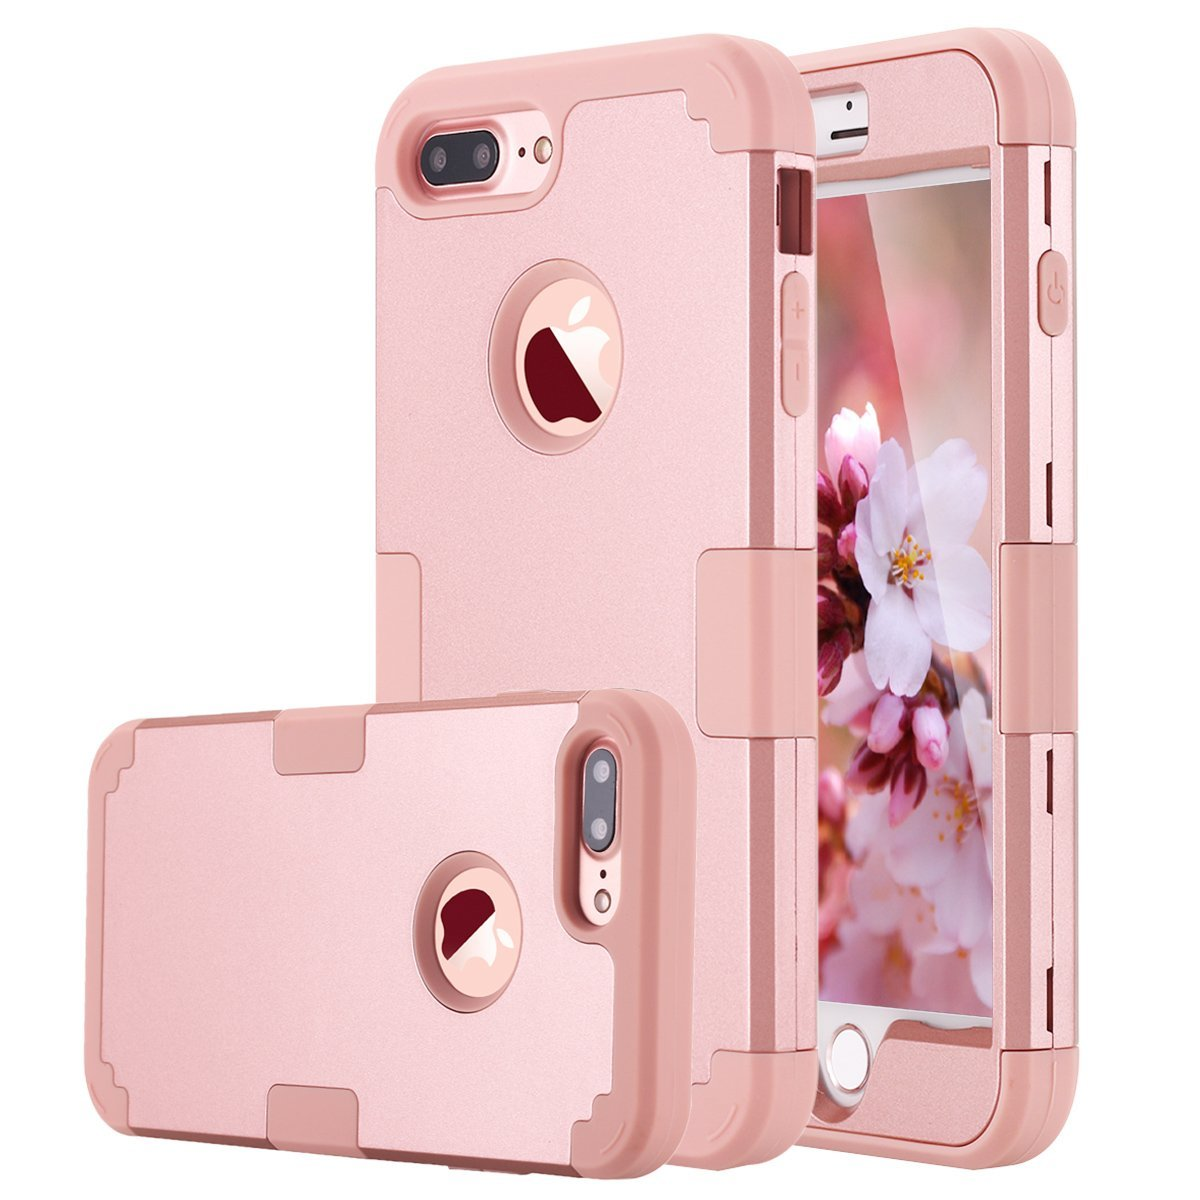 iphone protective case 8